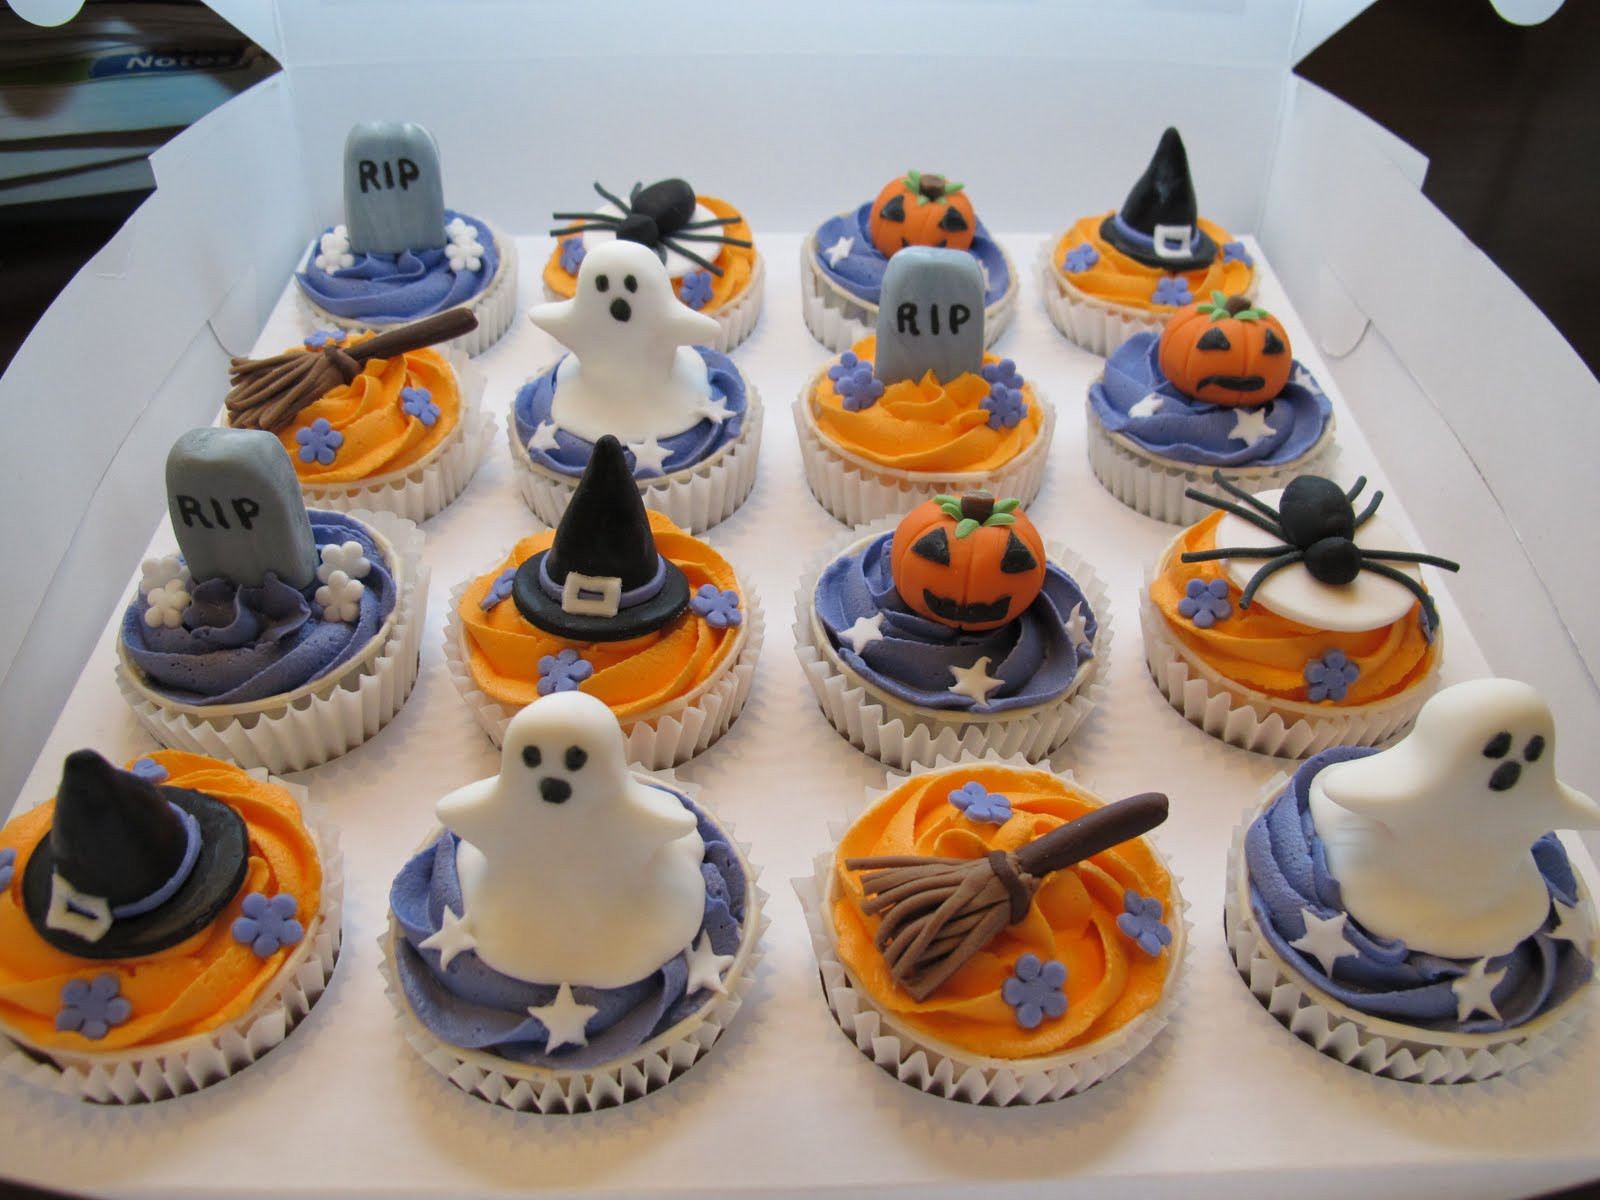 Halloween Cakes Decorations Ideas  Pink Oven Cakes and Cookies Halloween cupcake ideas